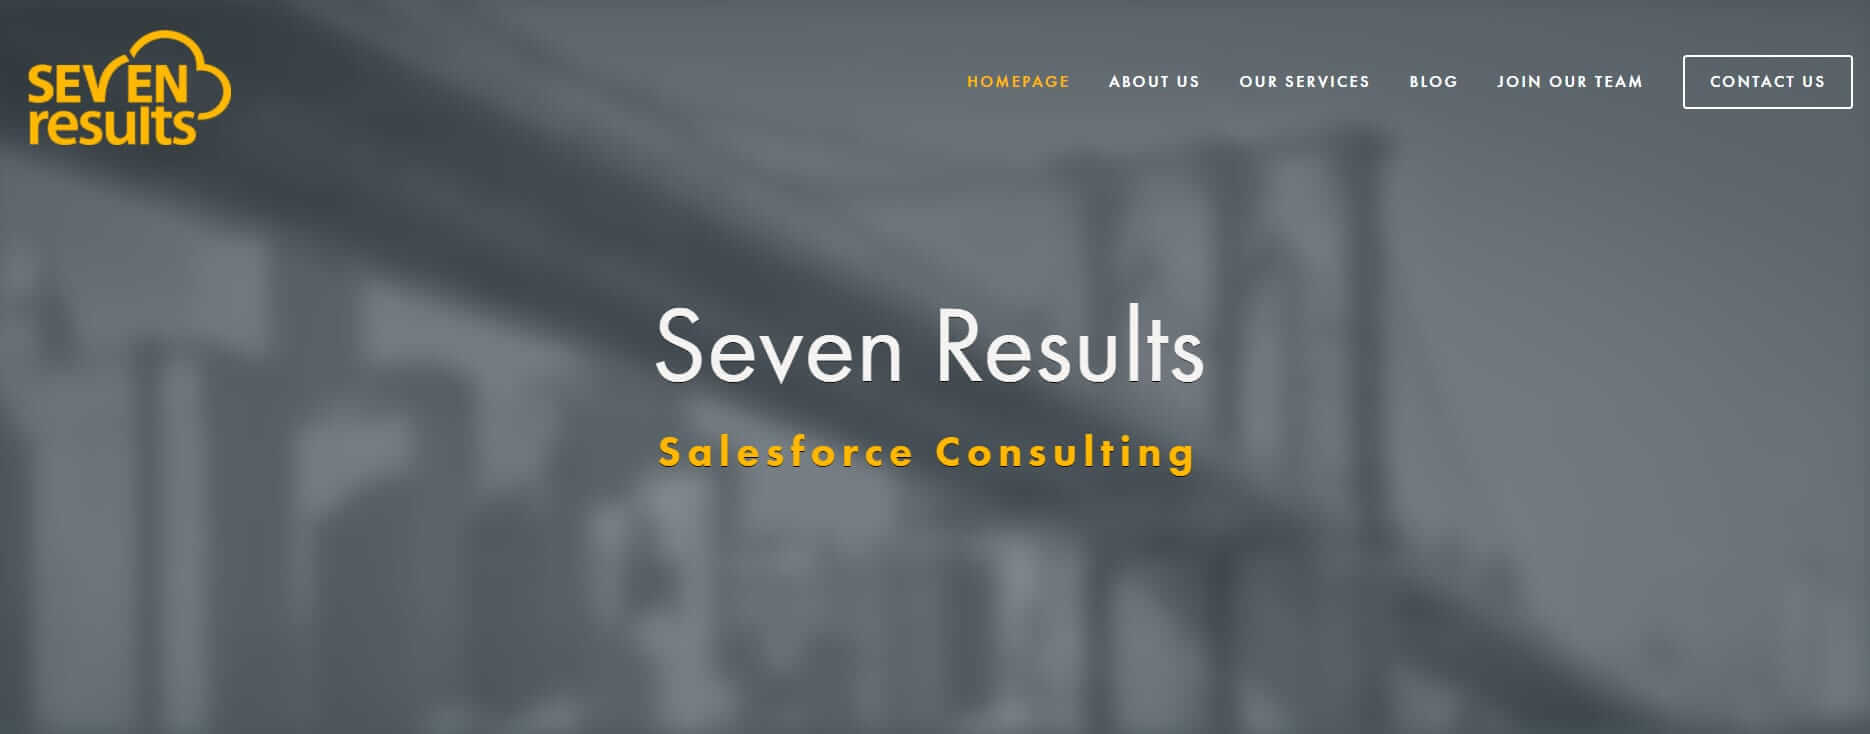 top-Salesforce-consulting-firms-ranking-Seven-Results